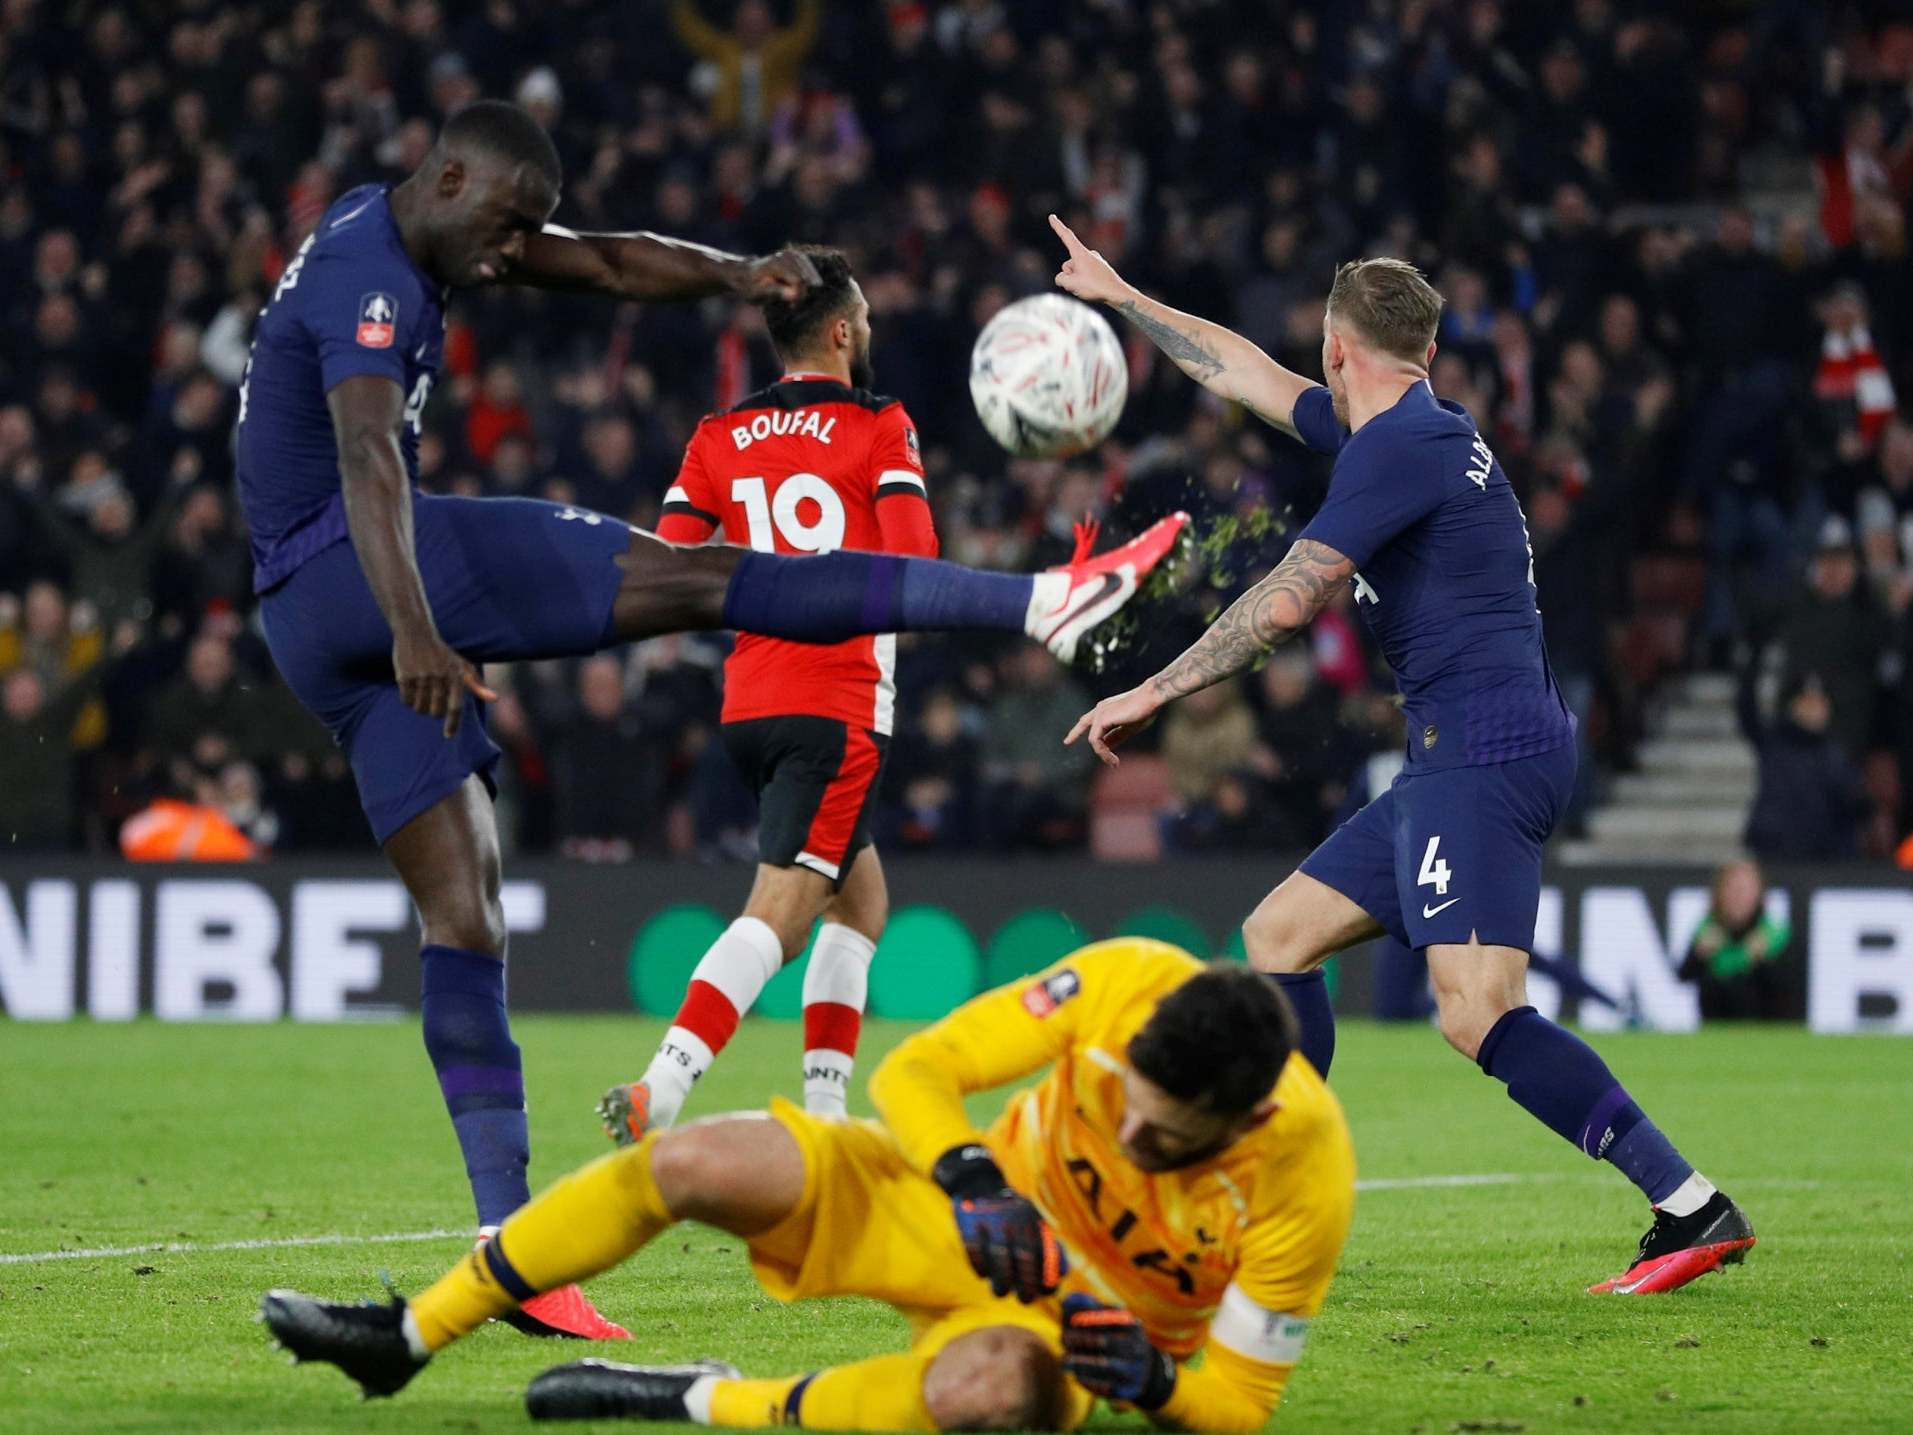 FA Cup fourth round round-up: Sofiane Boufal denies Spurs as West Brom heap misery on West Ham